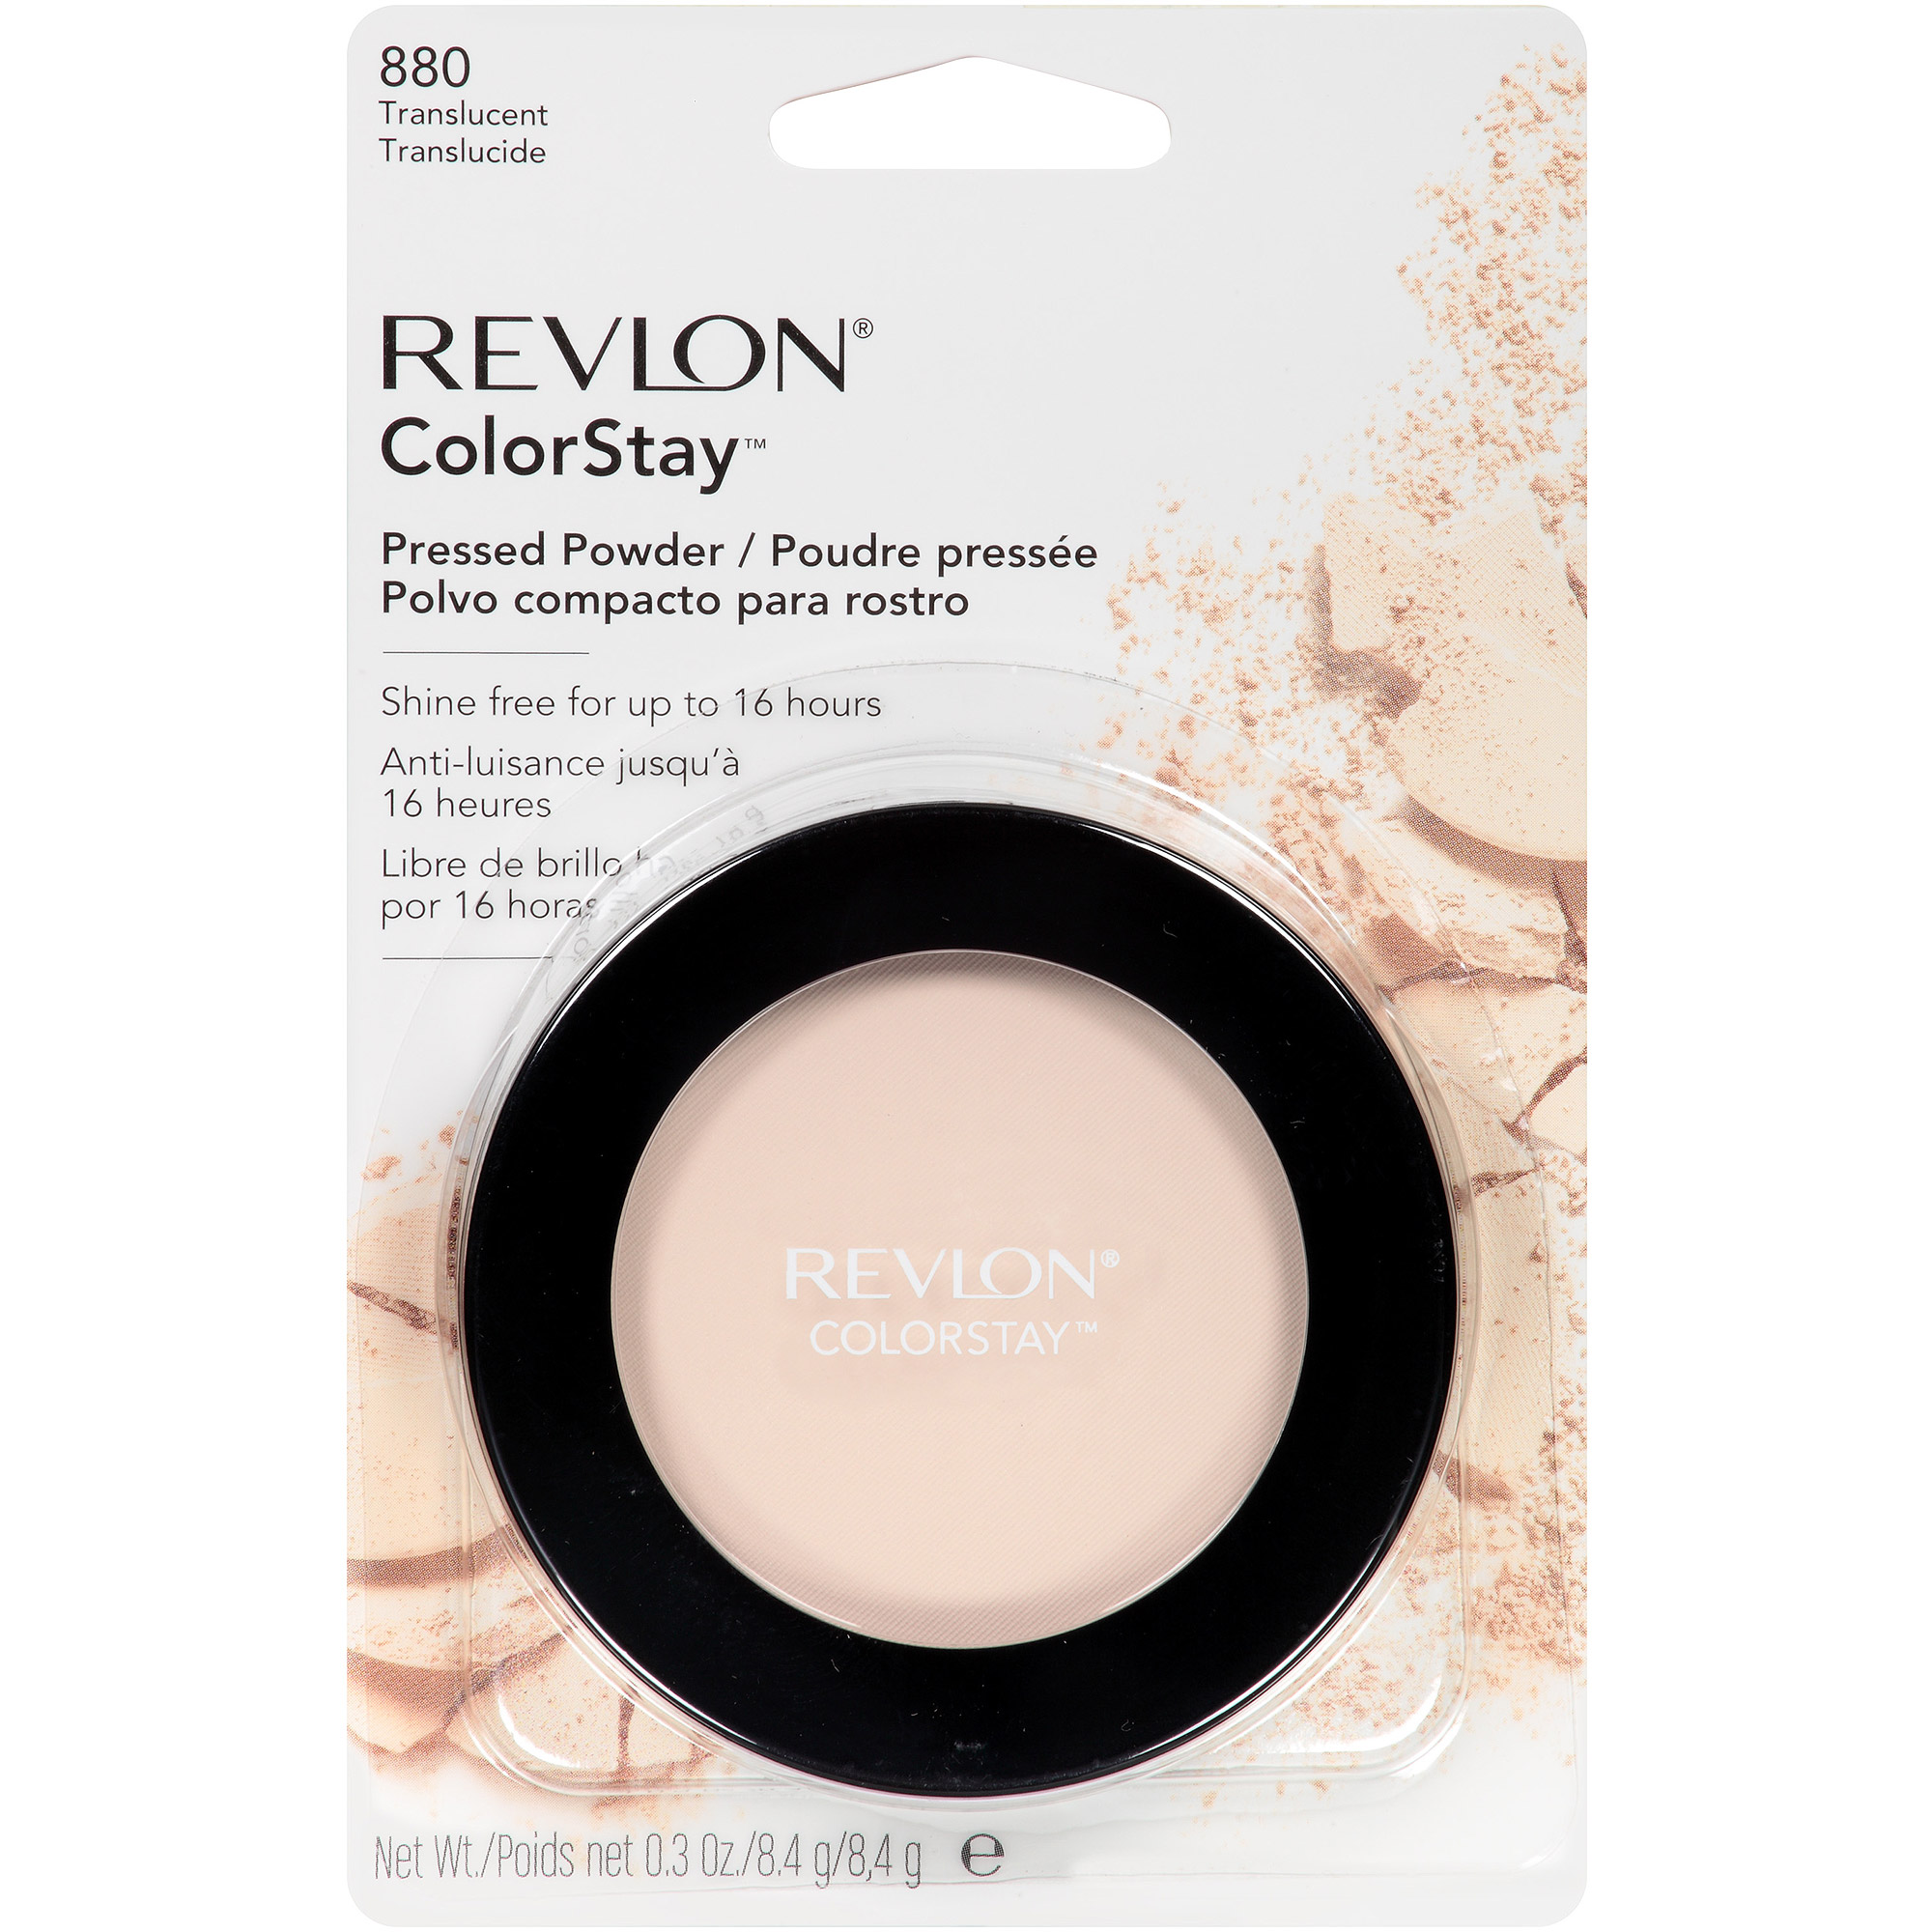 Revlon ColorStay Pressed Powder, 880 Translucent, 0.3 oz